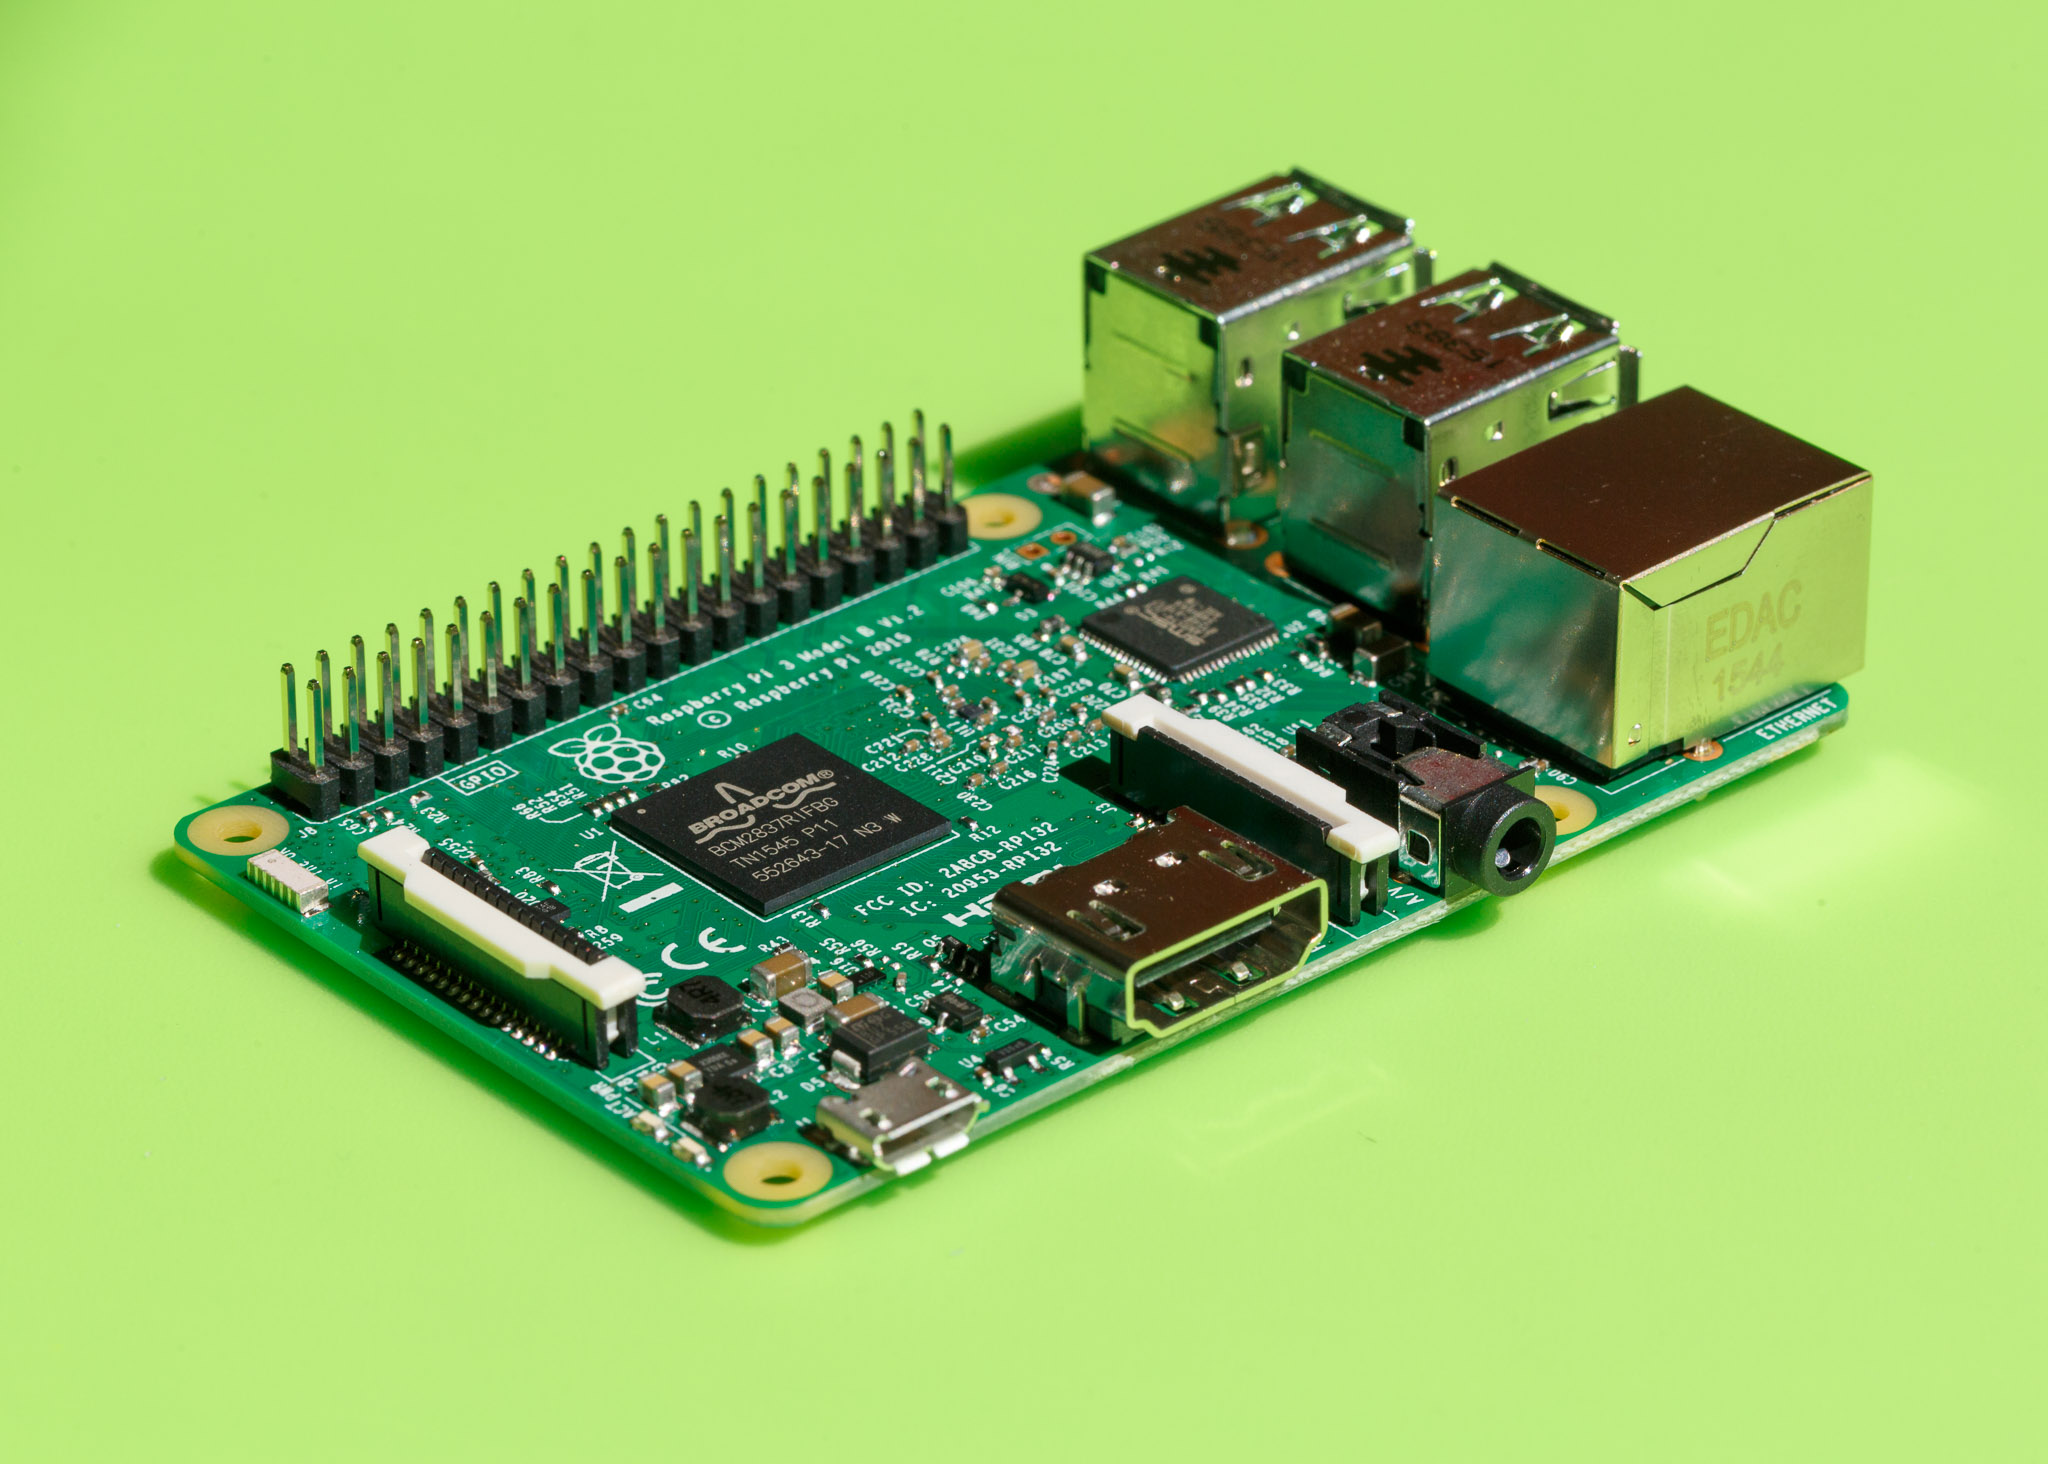 The Raspberry Pi 3 packs a lot of computing horsepower into a $35 circuit board for students.